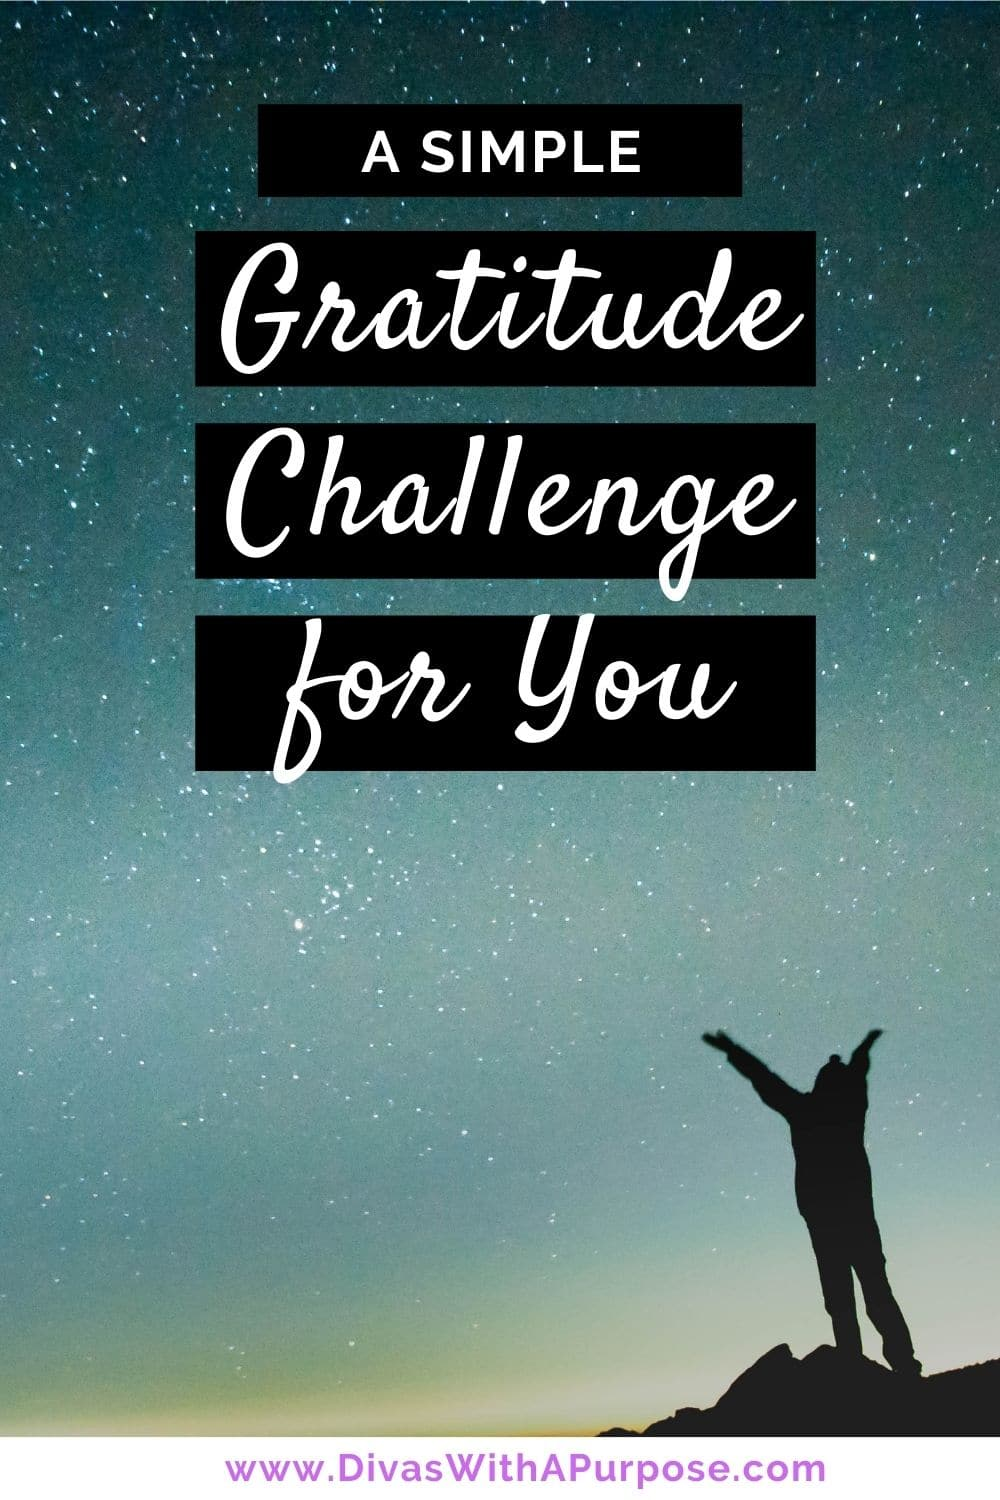 A simple gratitude challenge for you to take on Thankful Thursday (or any day) to focus on gratitude